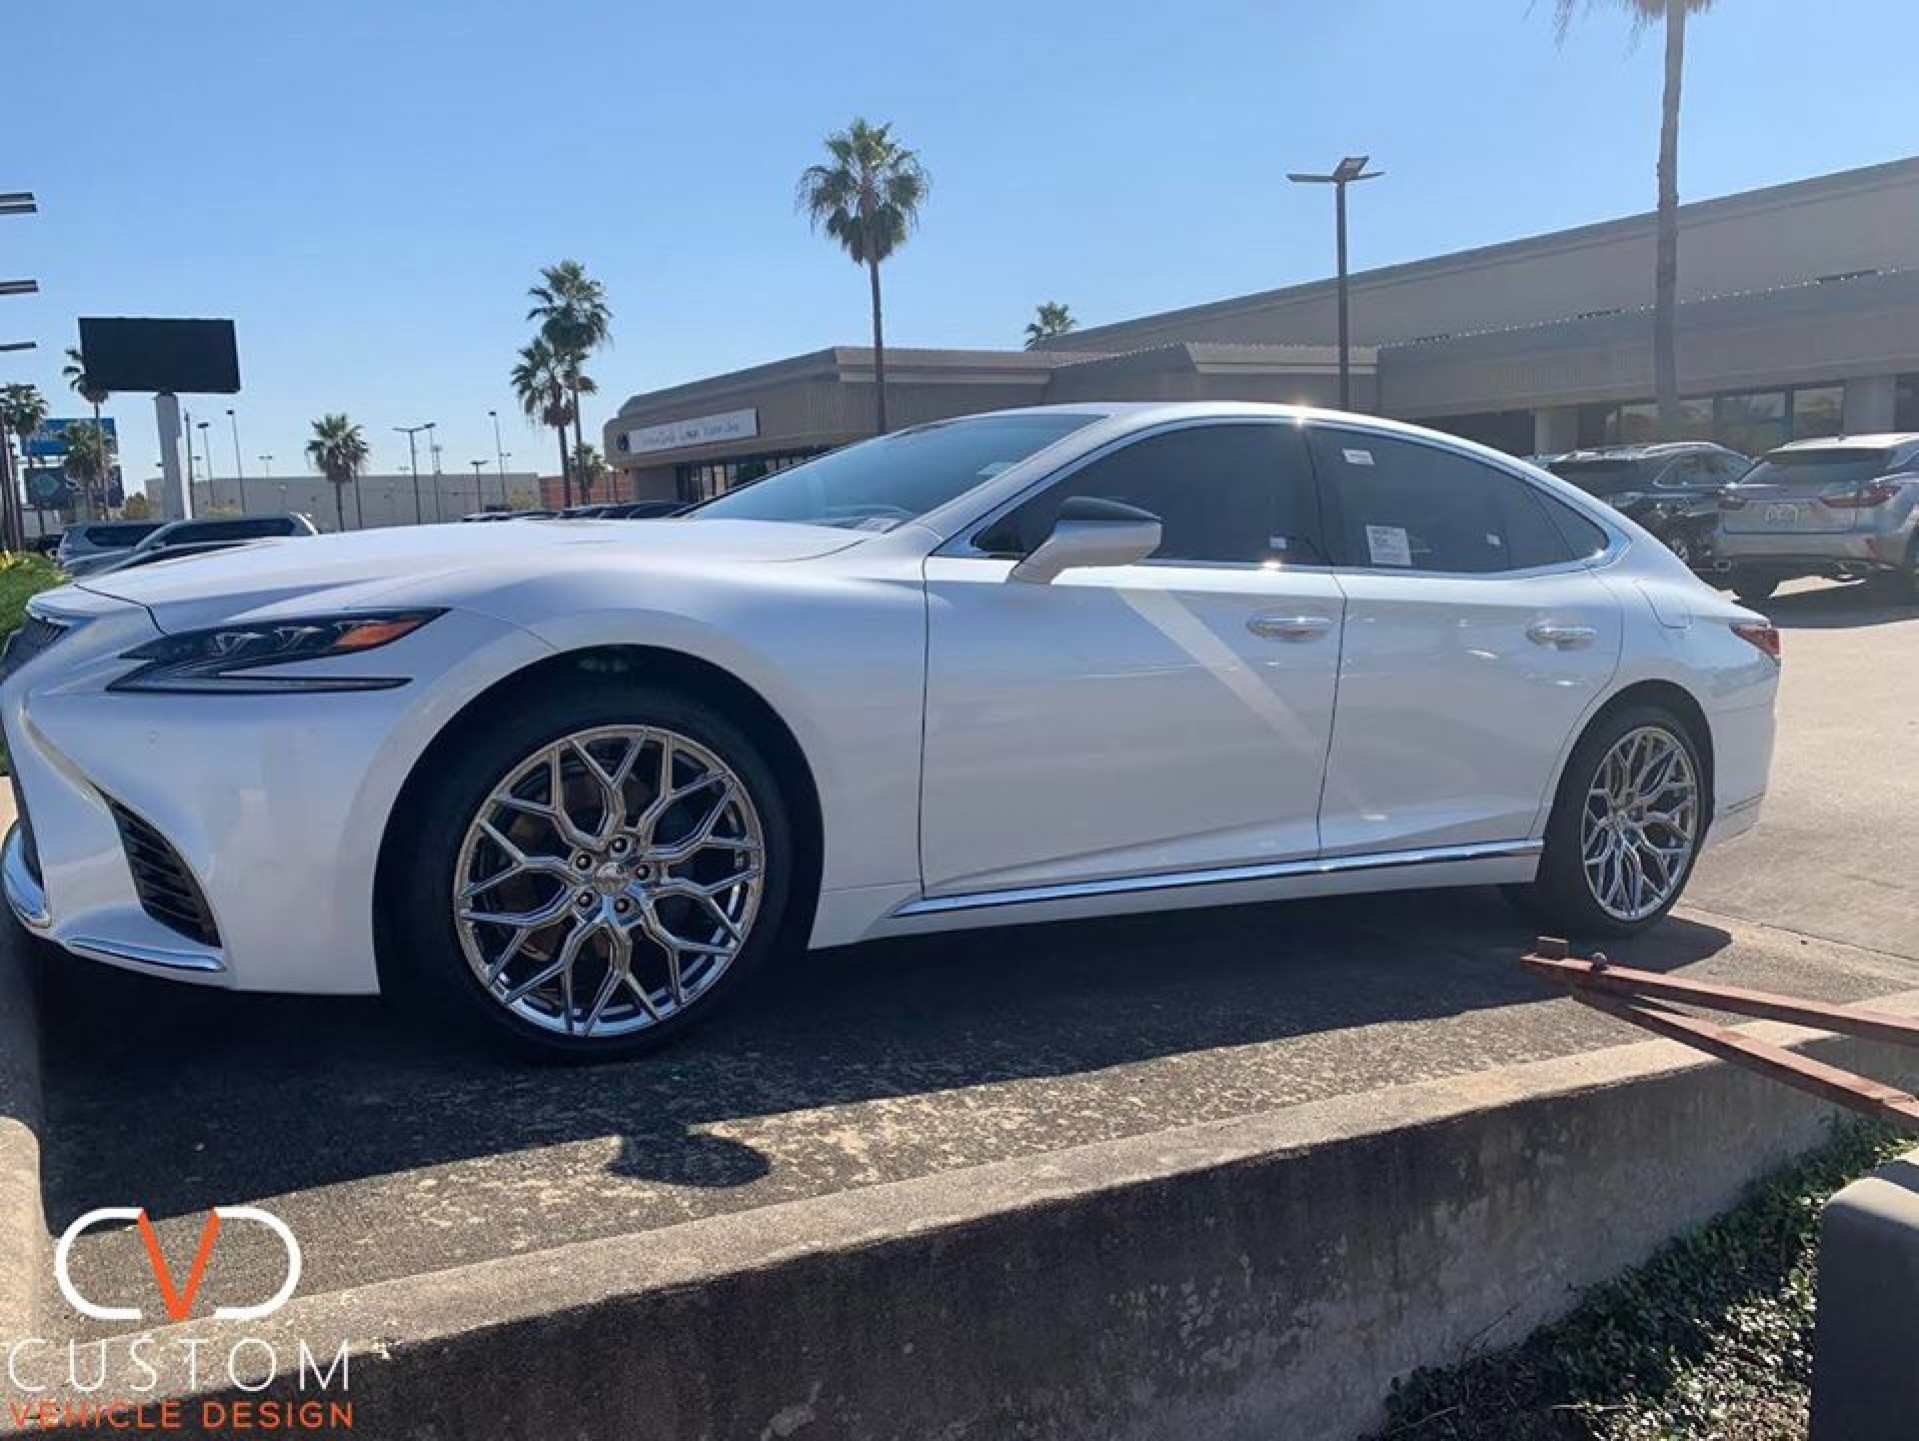 2020 Lexus LS500 with Vossen HF2 wheels ⠀